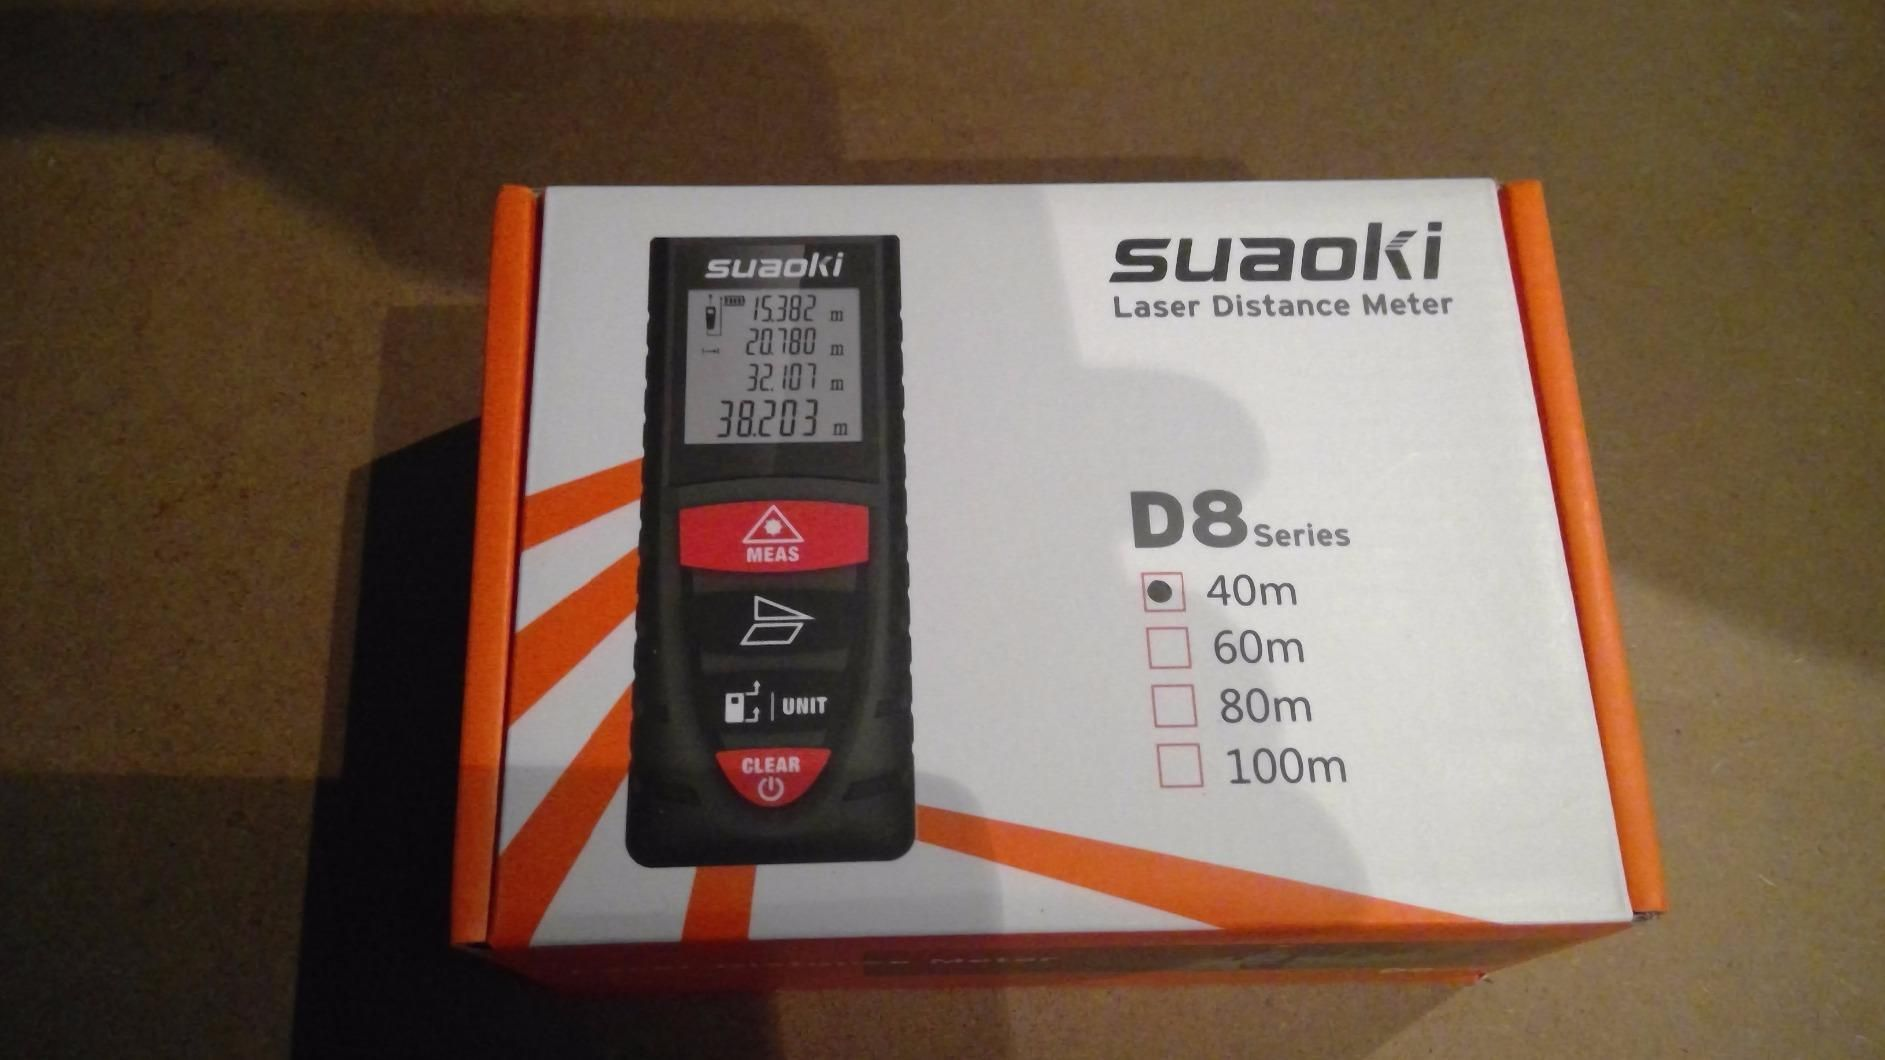 Amazon.co.uk: lets be honests review of suaoki d8 131.24ft 40m